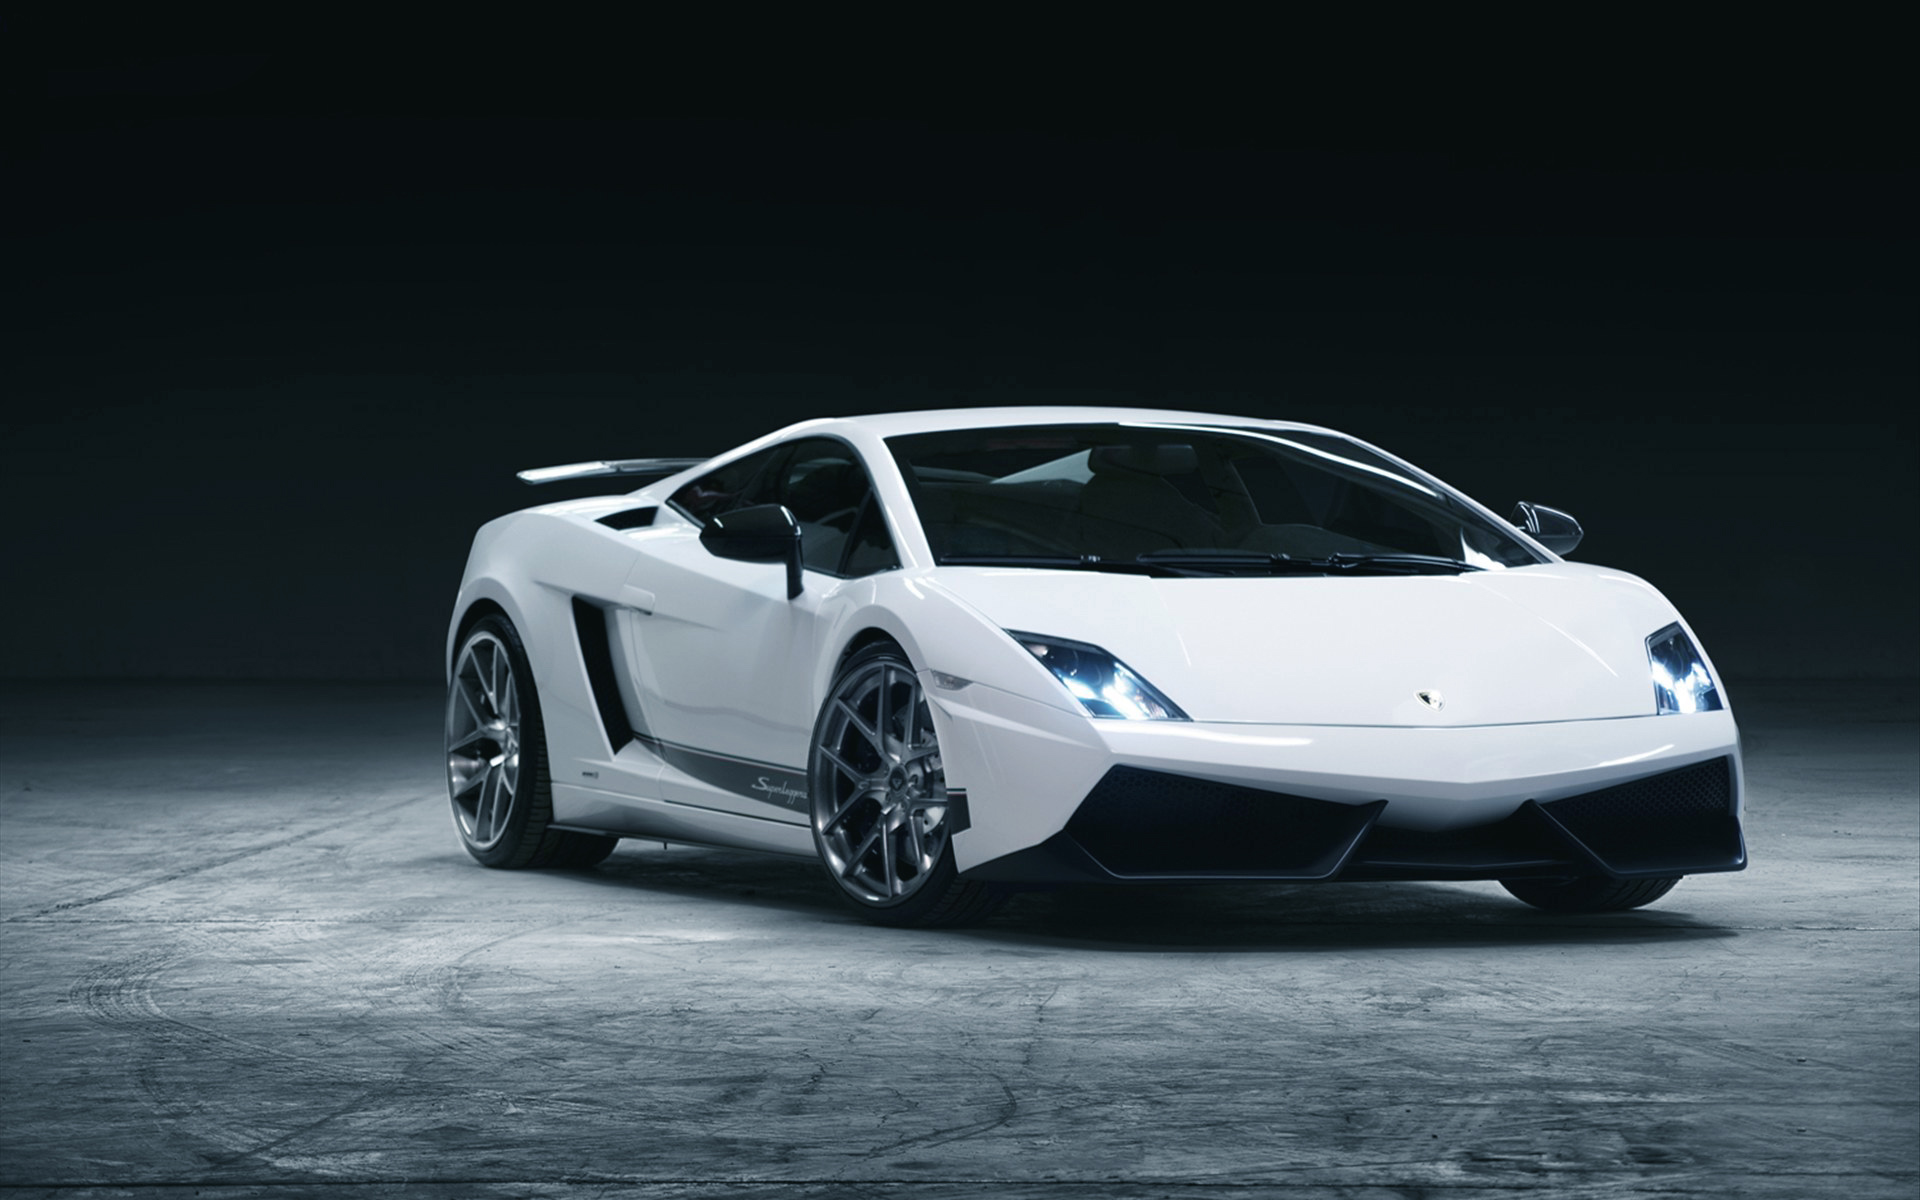 2012 Vorsteiner Lamborghini Gallardo Wallpapers | HD Wallpapers 187